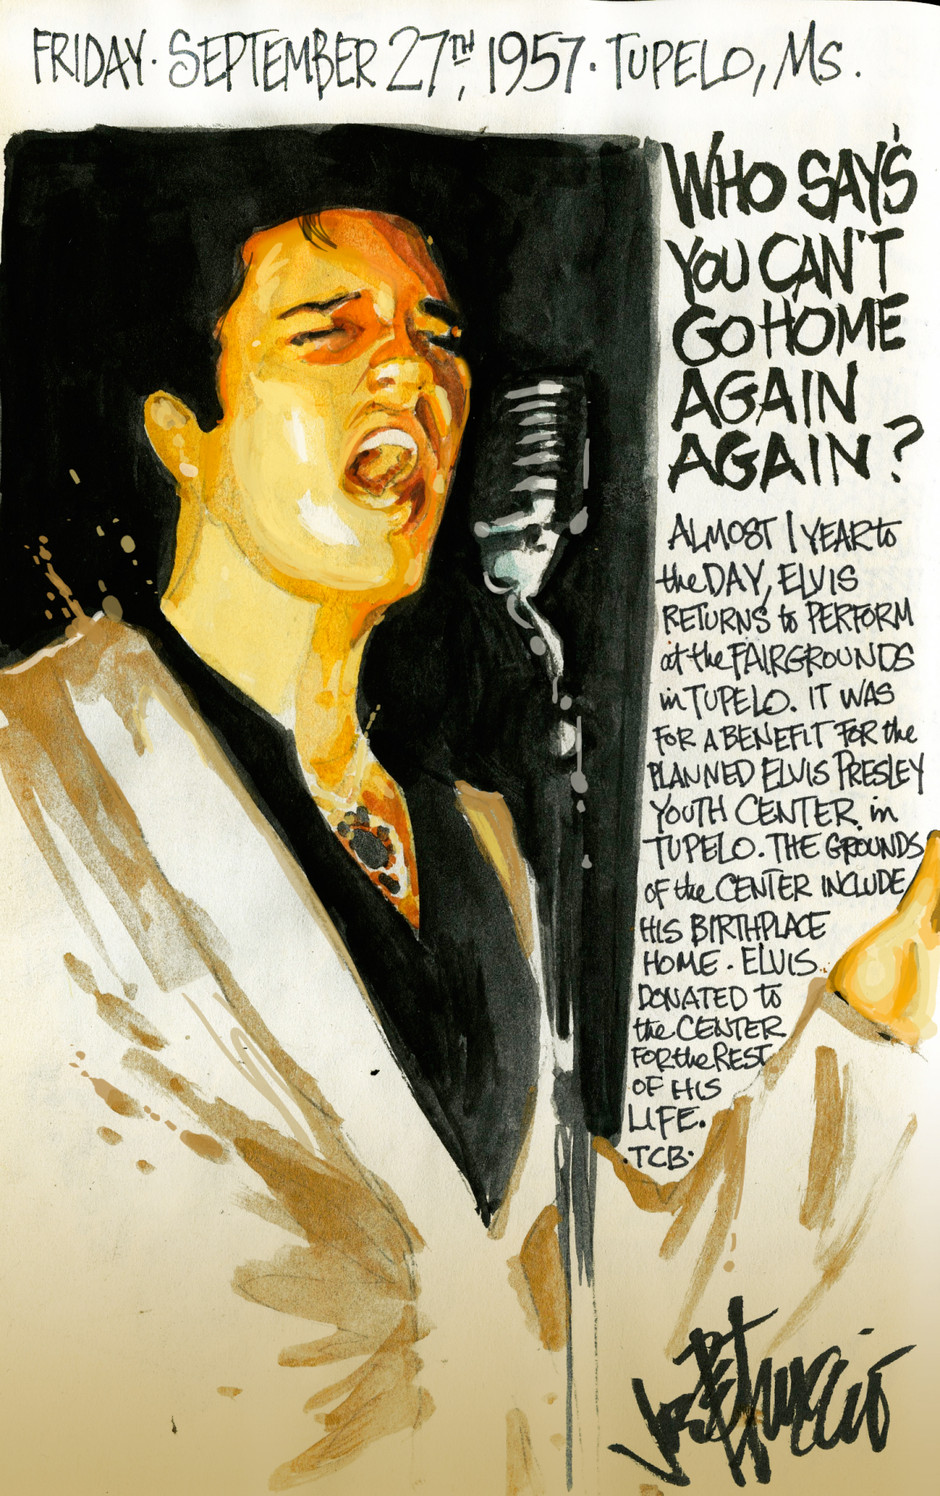 THIS DAY IN ELVIS HISTORY... WHO SAY'S YOU CAN'T GO HOME AGAIN AGAIN?